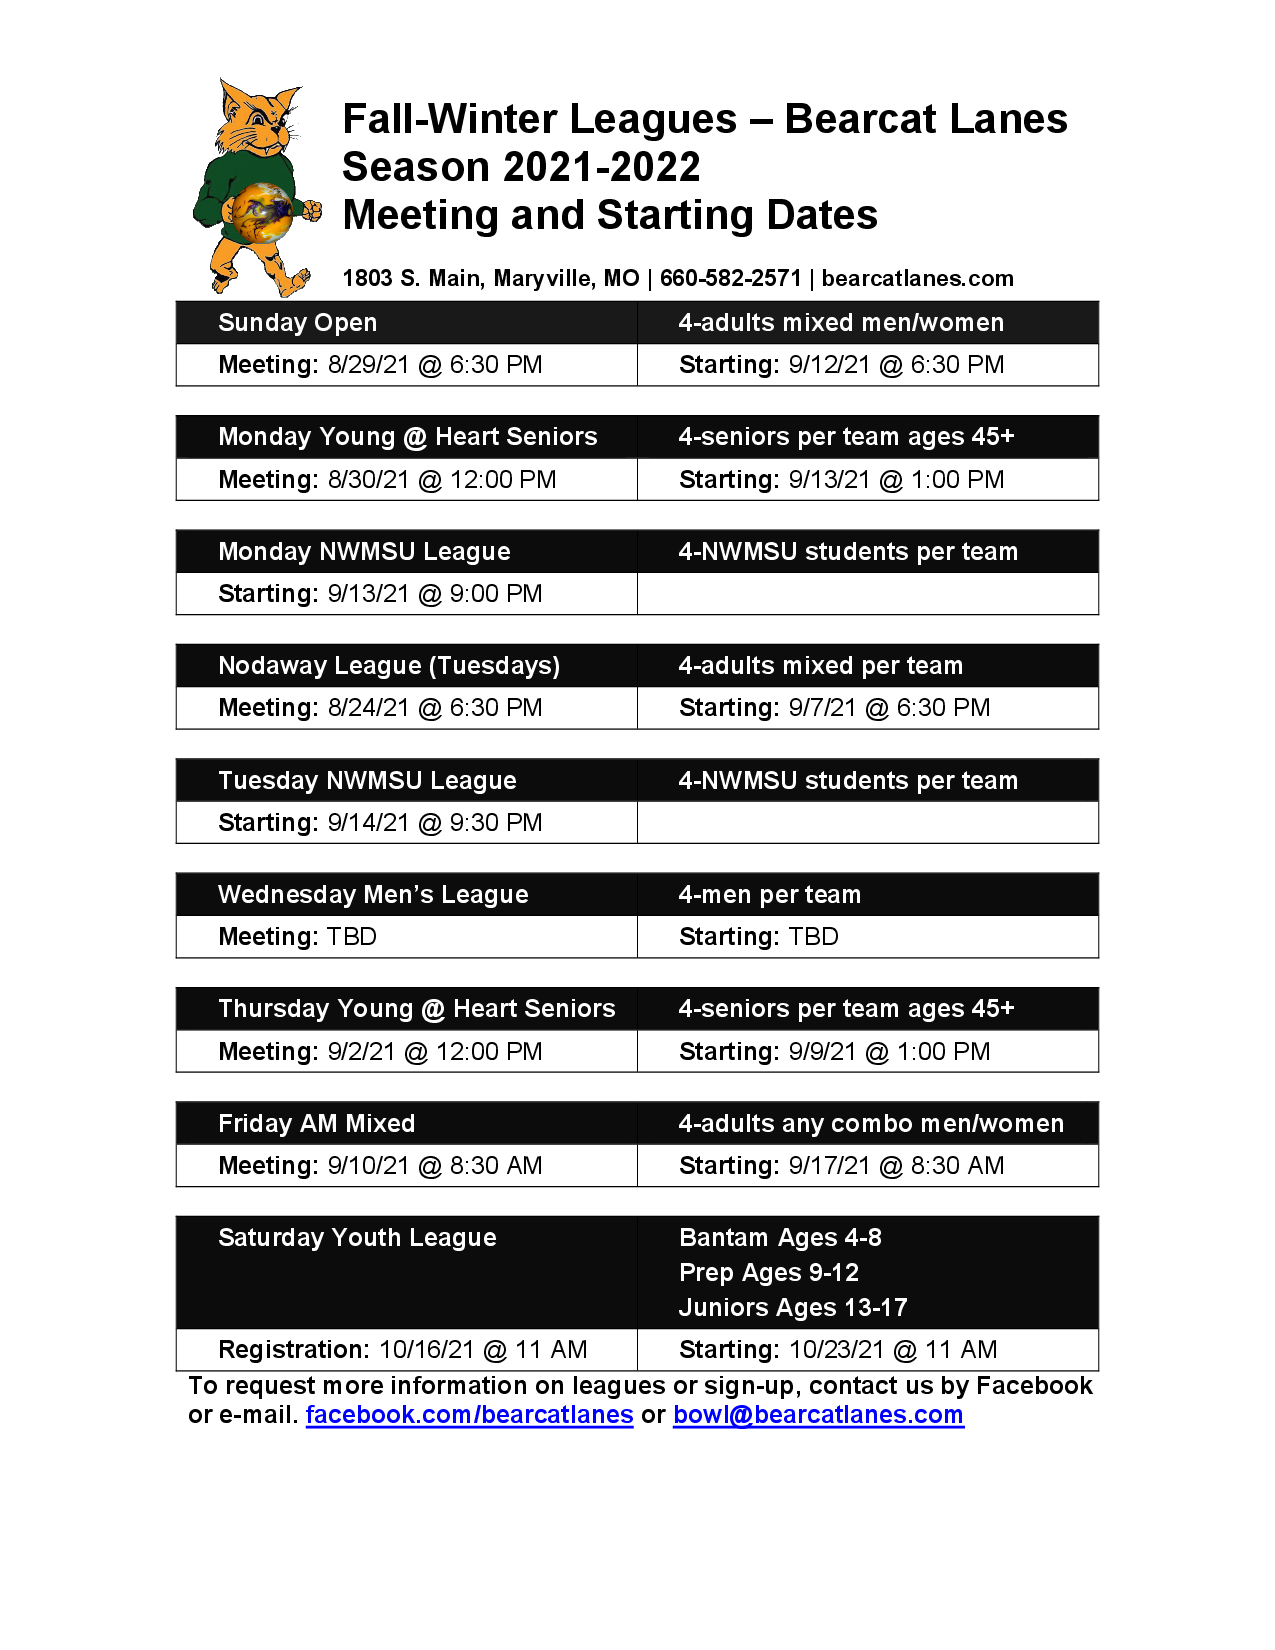 League Meetings and Starting Dates